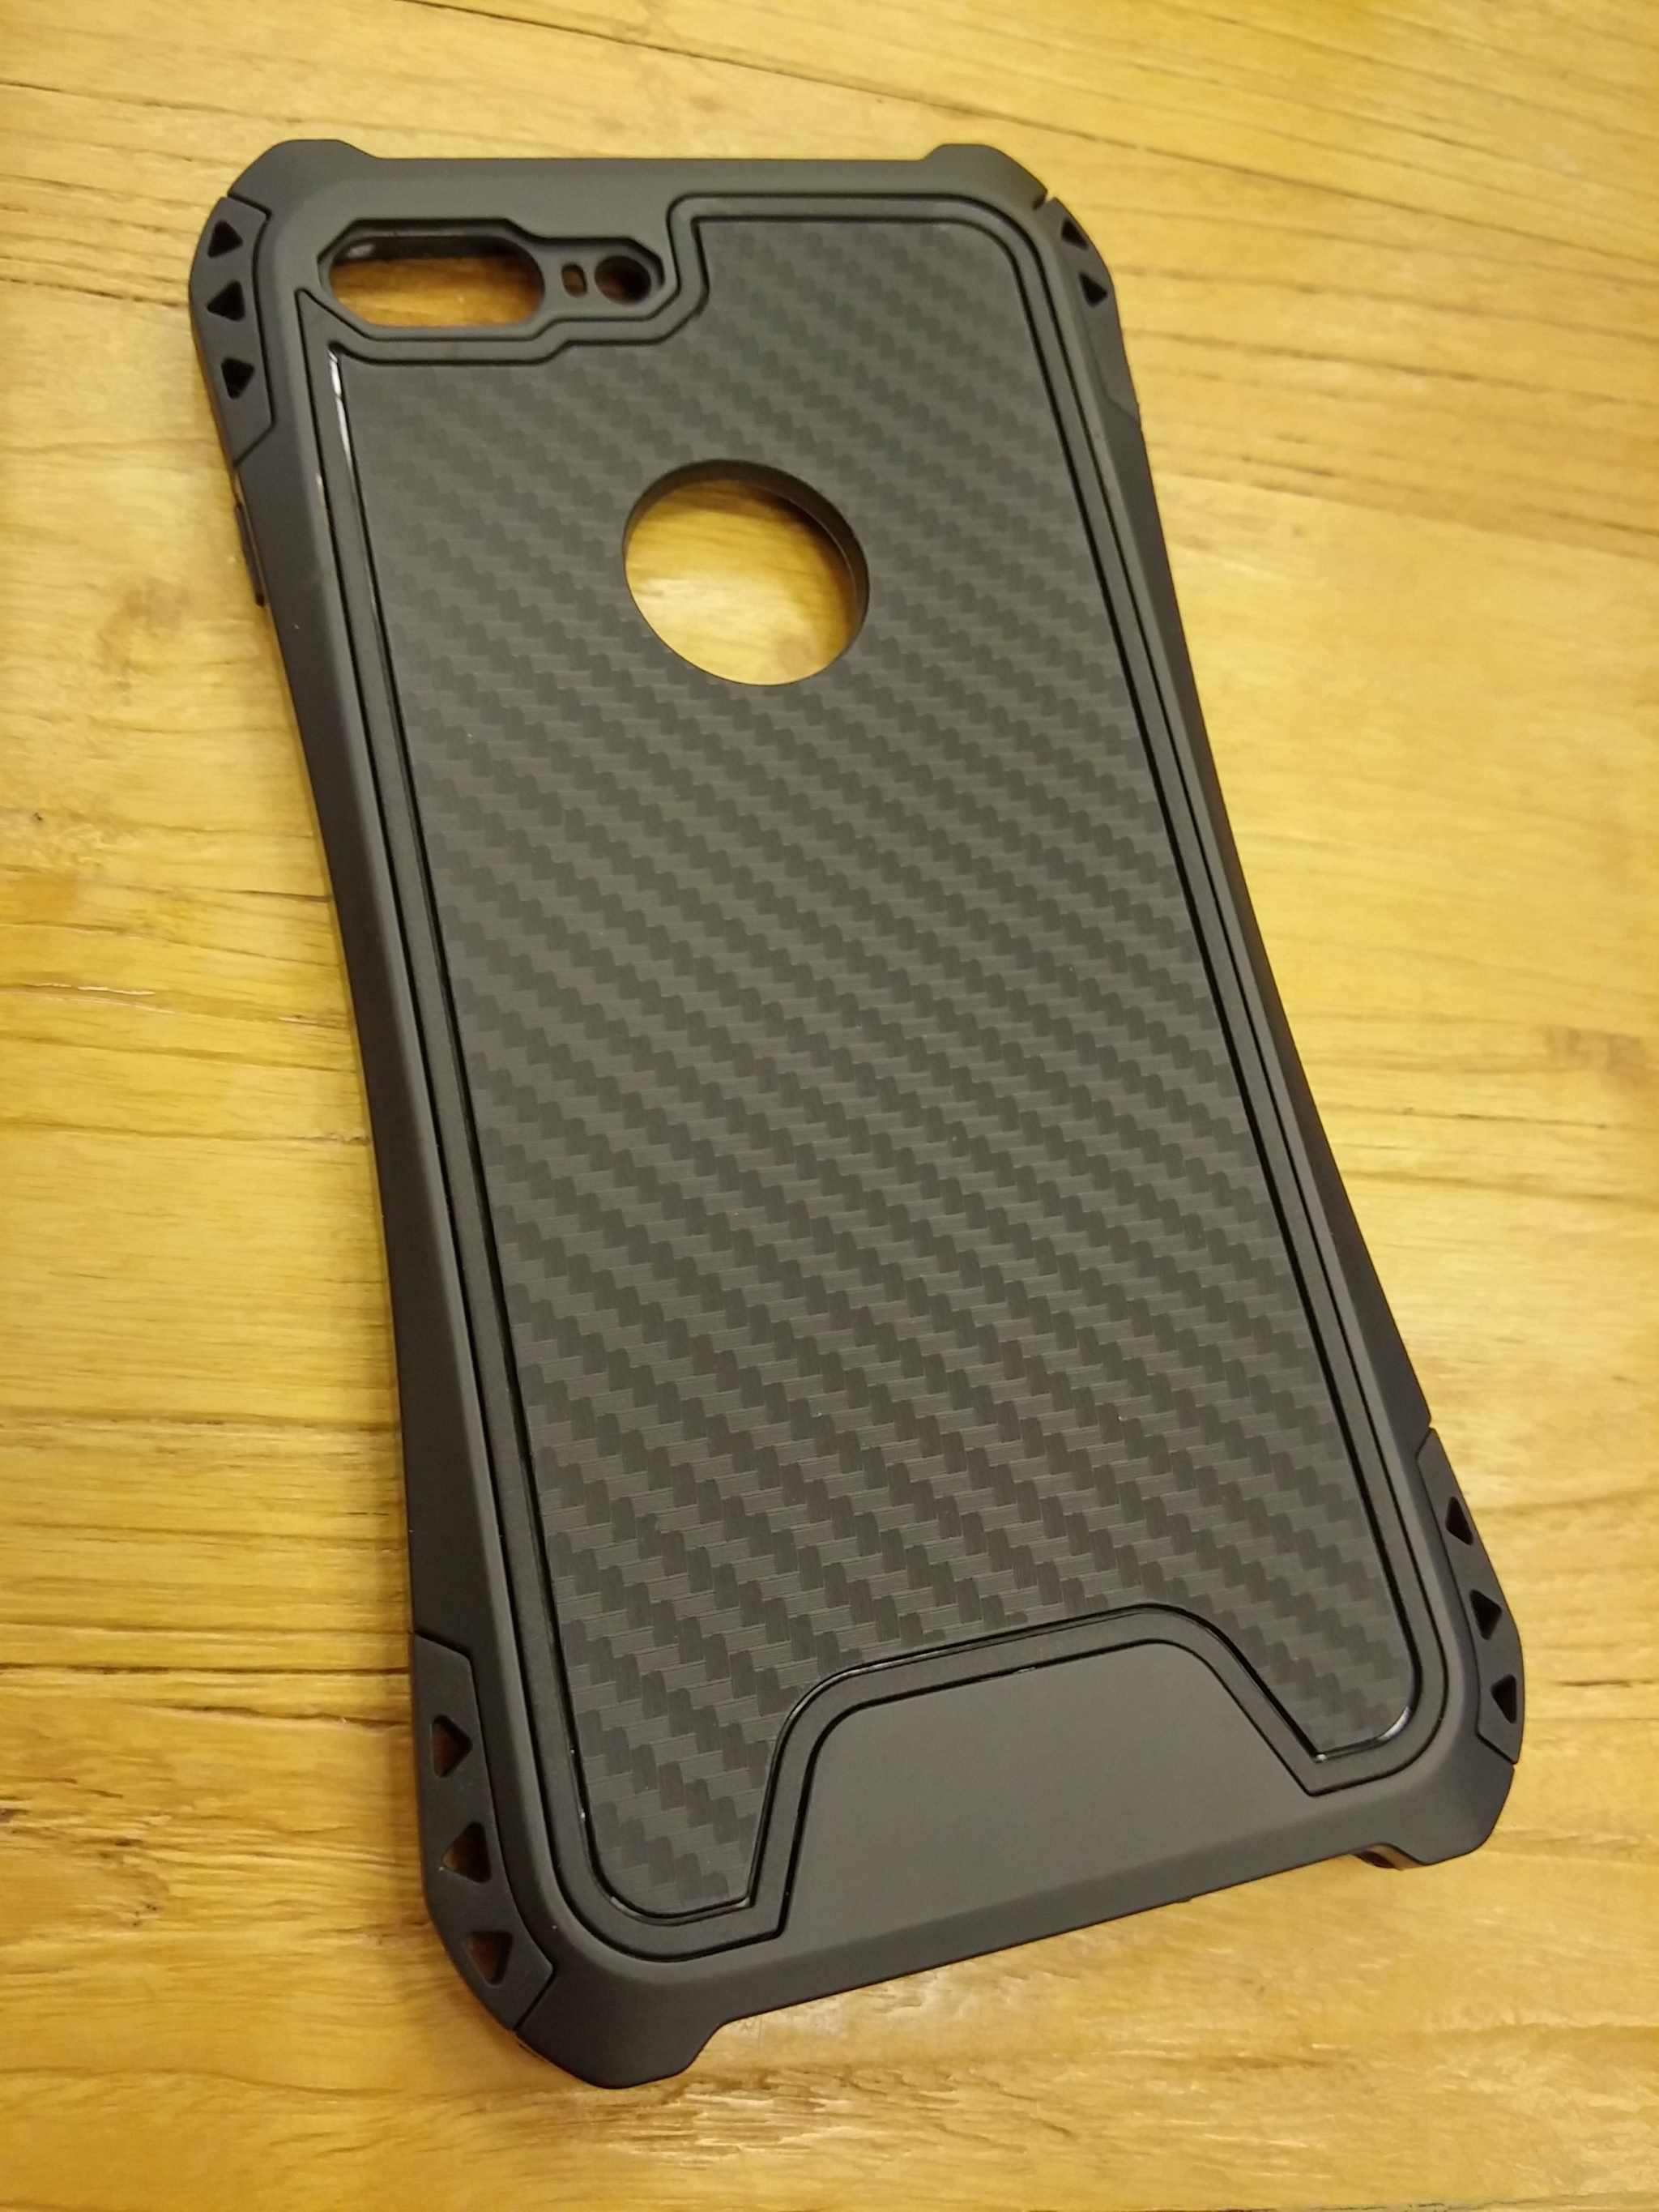 Apple iPhone 7 7S Plus 5.5 Shift Carbon Rugged Armor Case - Heavy Duty